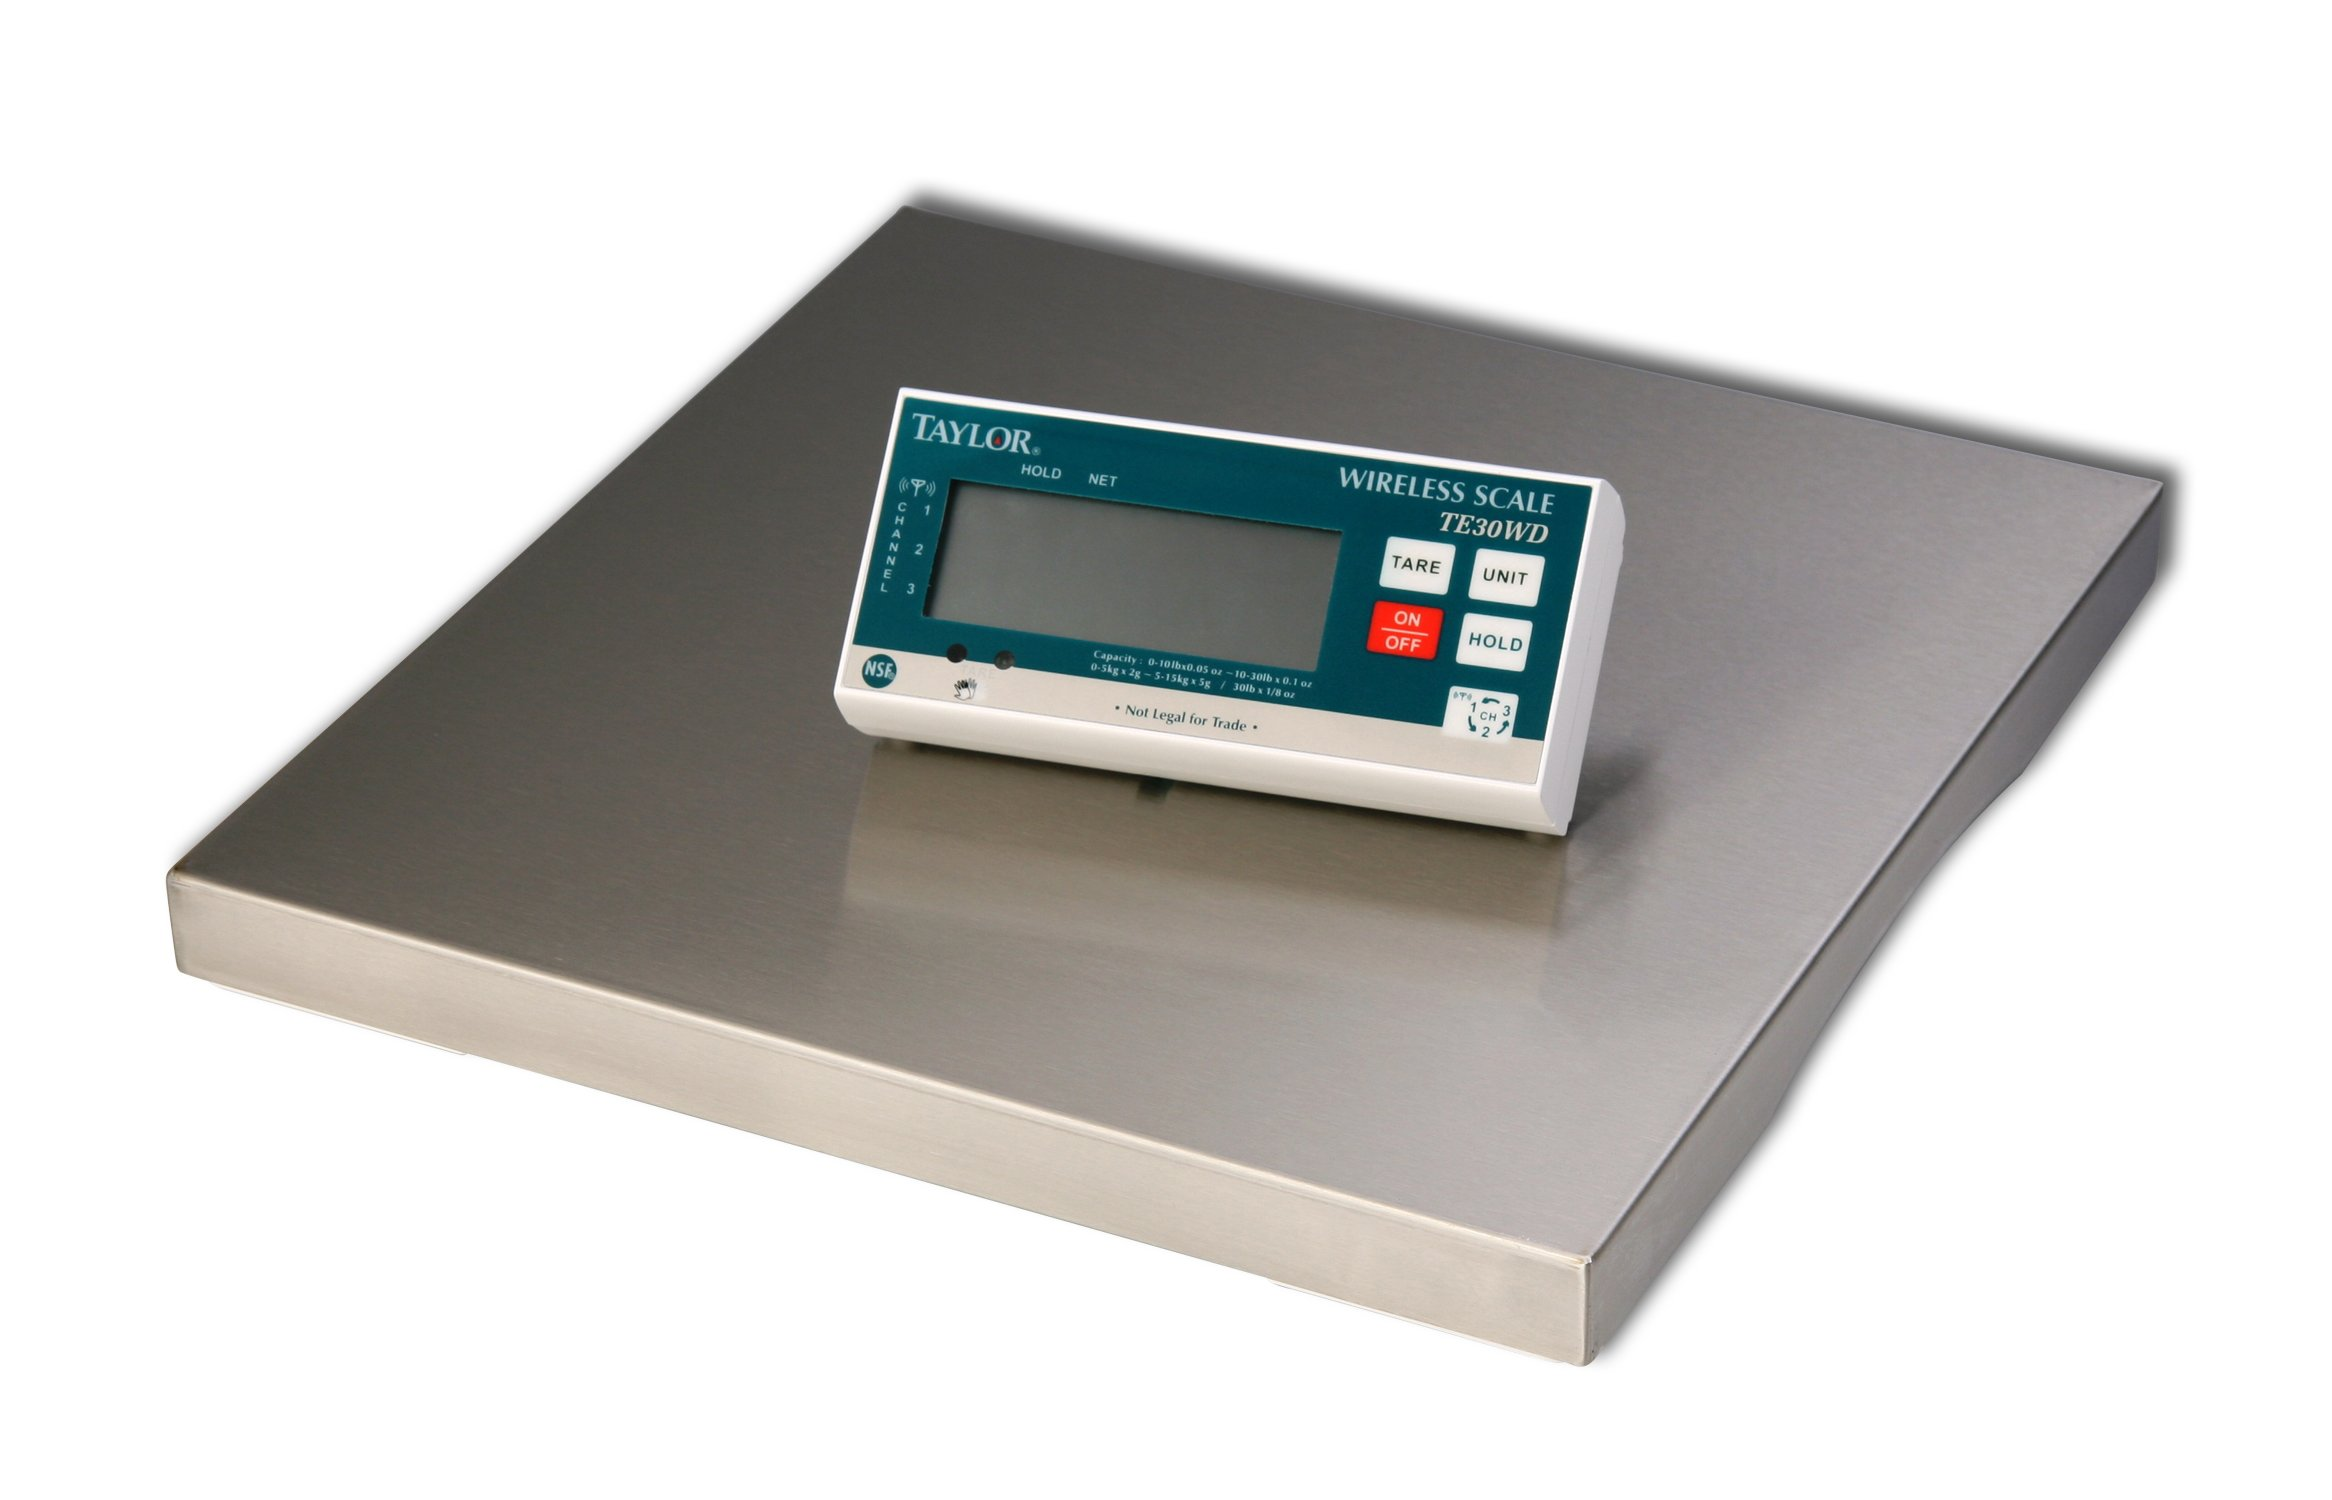 Taylor Precision Products TE30WD Digital Portion Control Scale with Wireless Digital Display, 30 lb., 15.10' Height, 15.25' Width, 3.0' Length